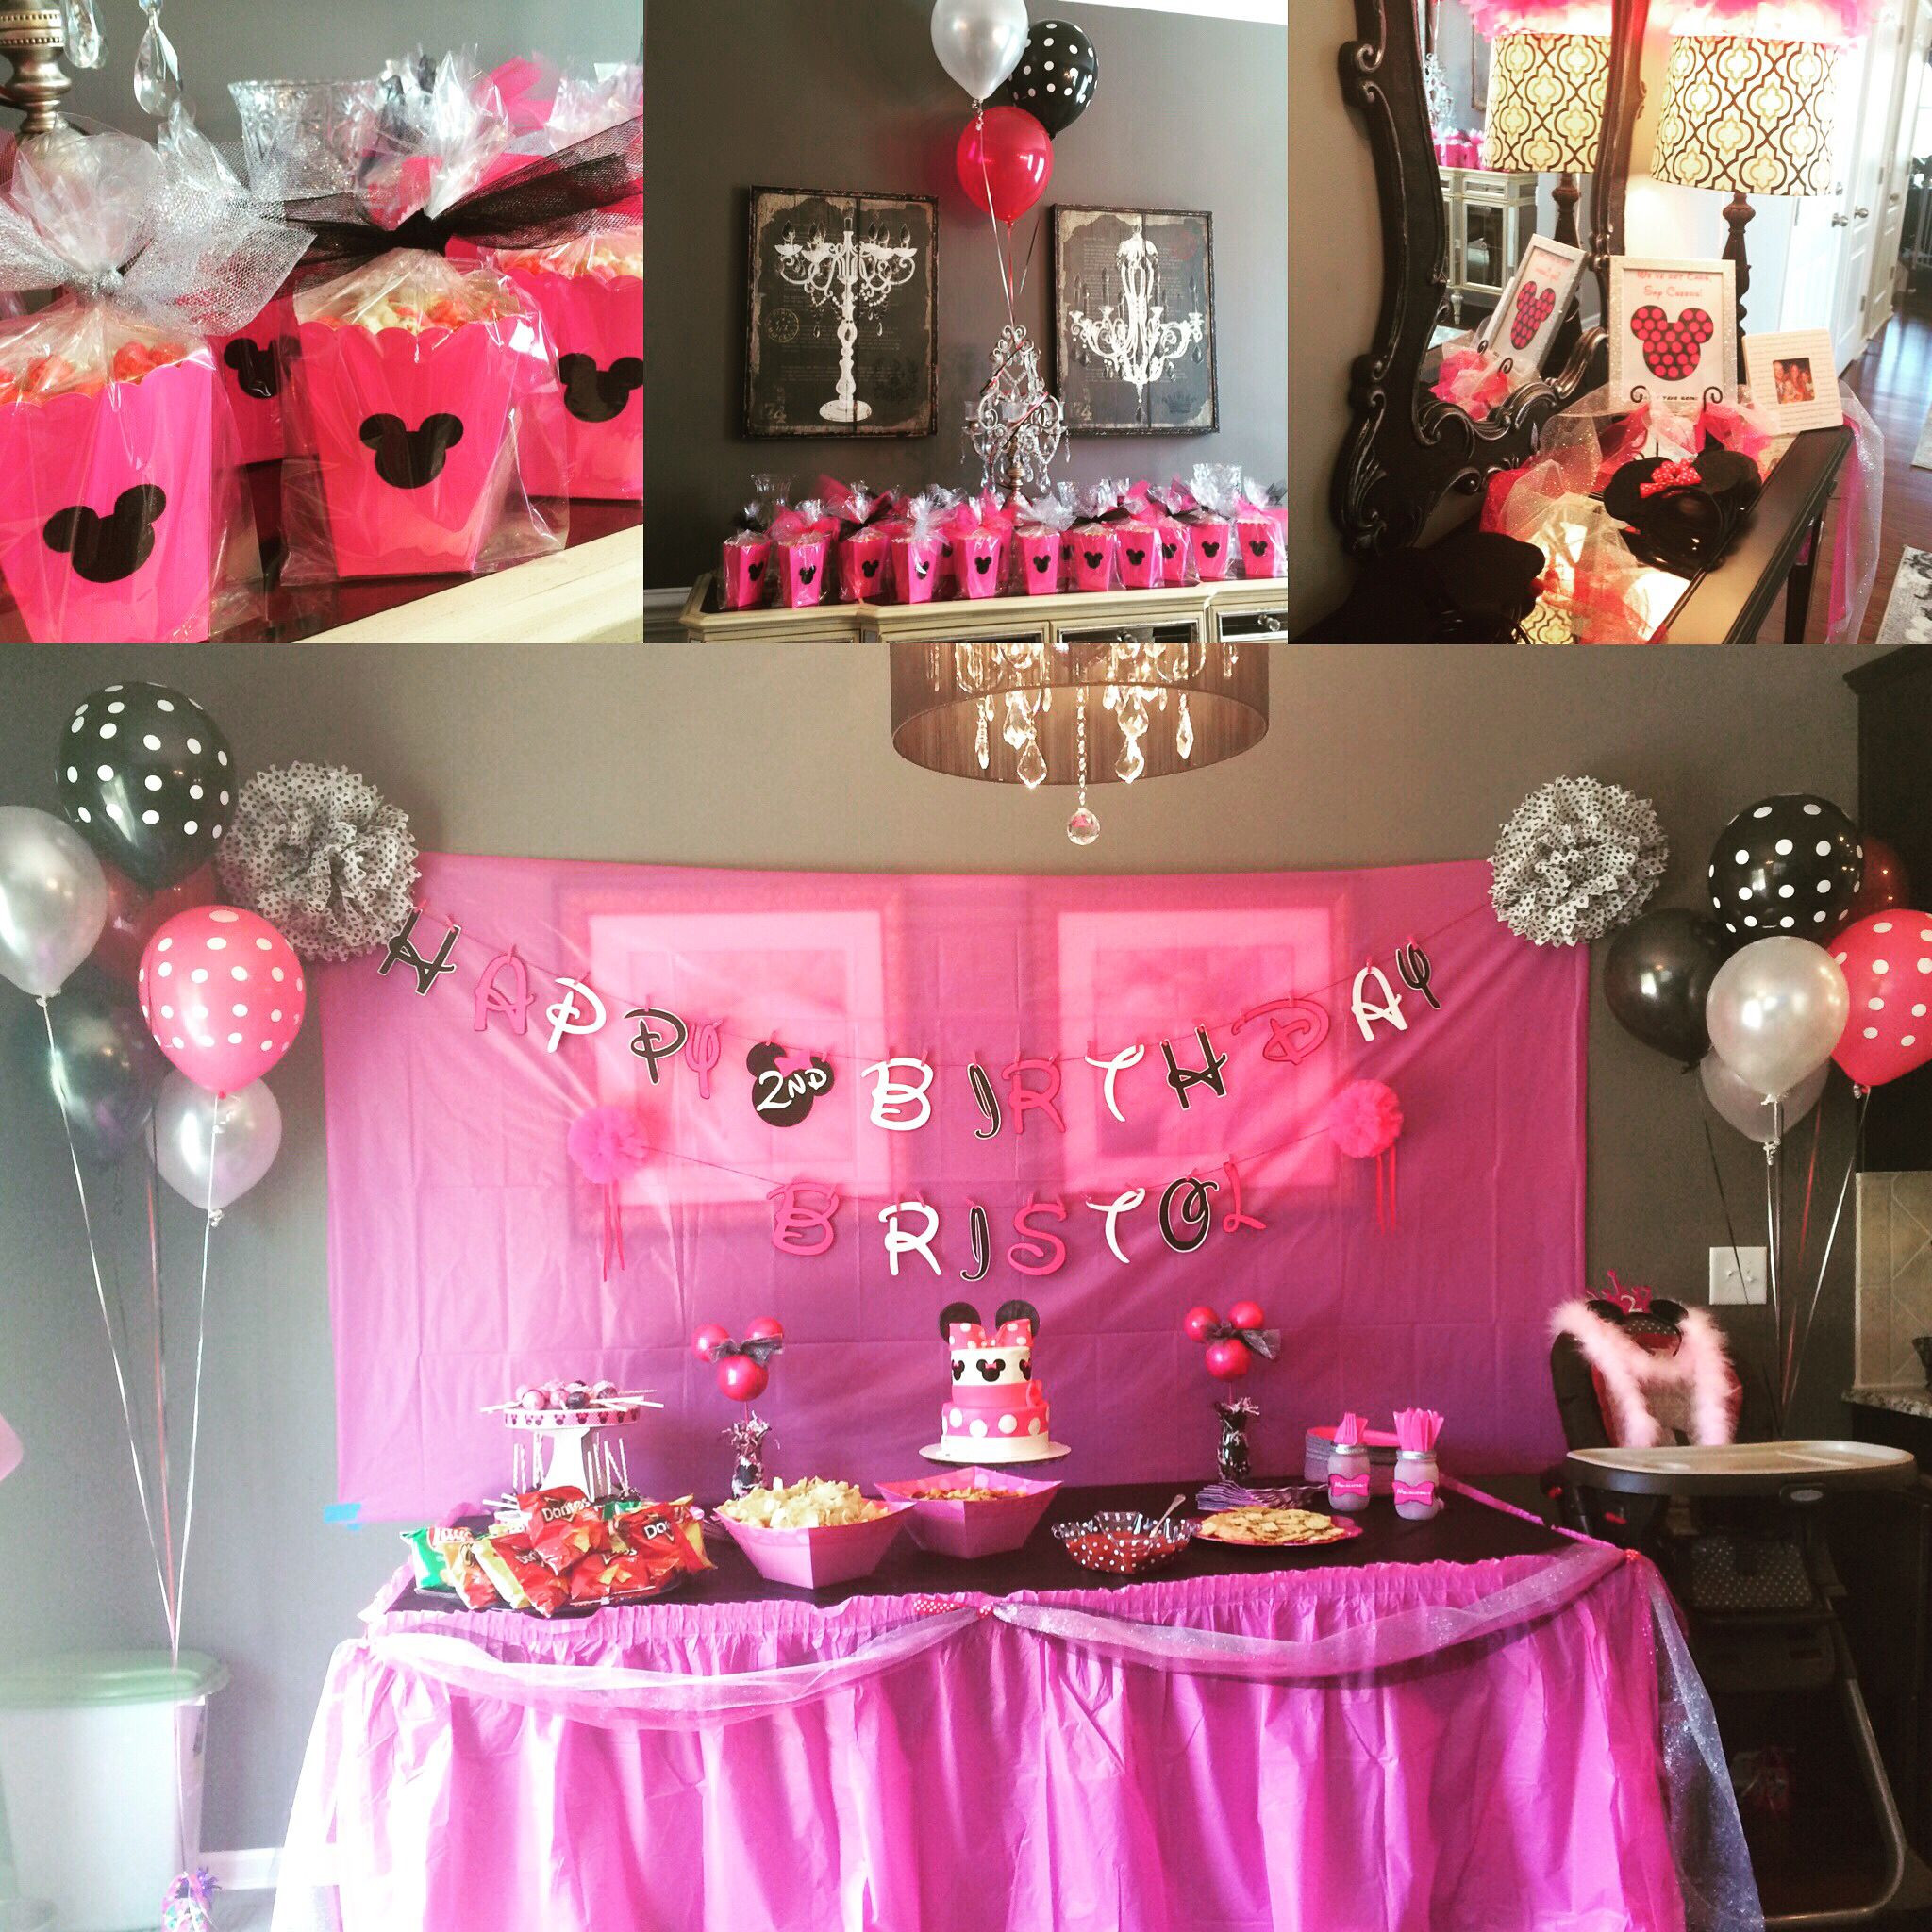 Birthday Party Ideas For 2 Year Girl  Our Minnie Mouse Birthday for our sweet 2 year old